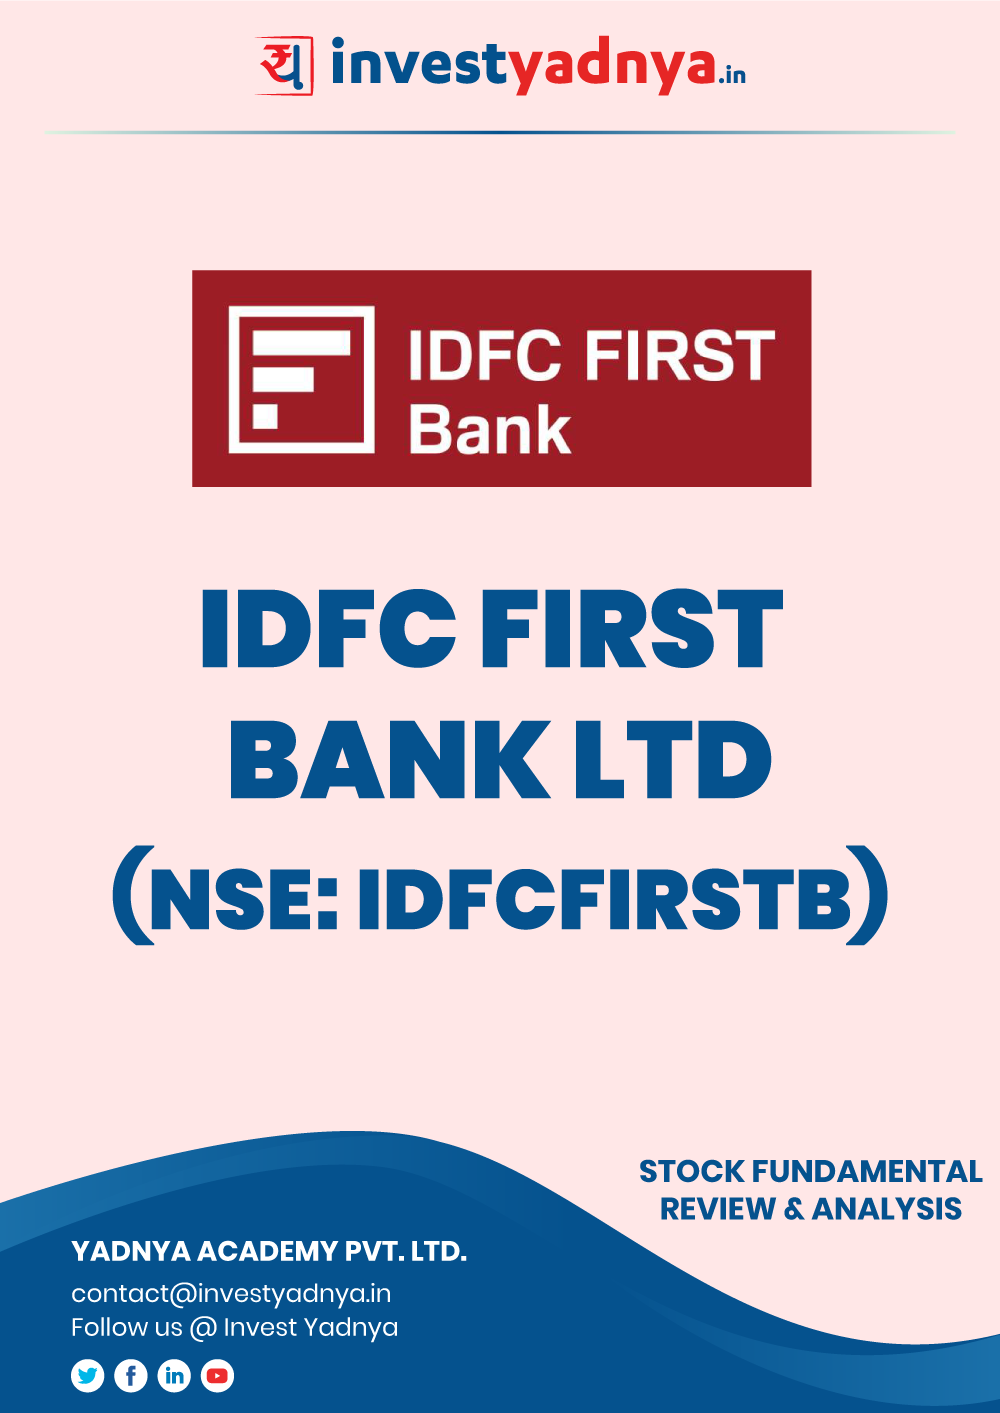 This e-book contains in-depth fundamental analysis of HDIDFC First Bank FC considering both Financial and Equity Research Parameters. It reviews the company, industry competitors, shareholding pattern, financials, and annual performance. ✔ Detailed Research ✔ Quality Reports